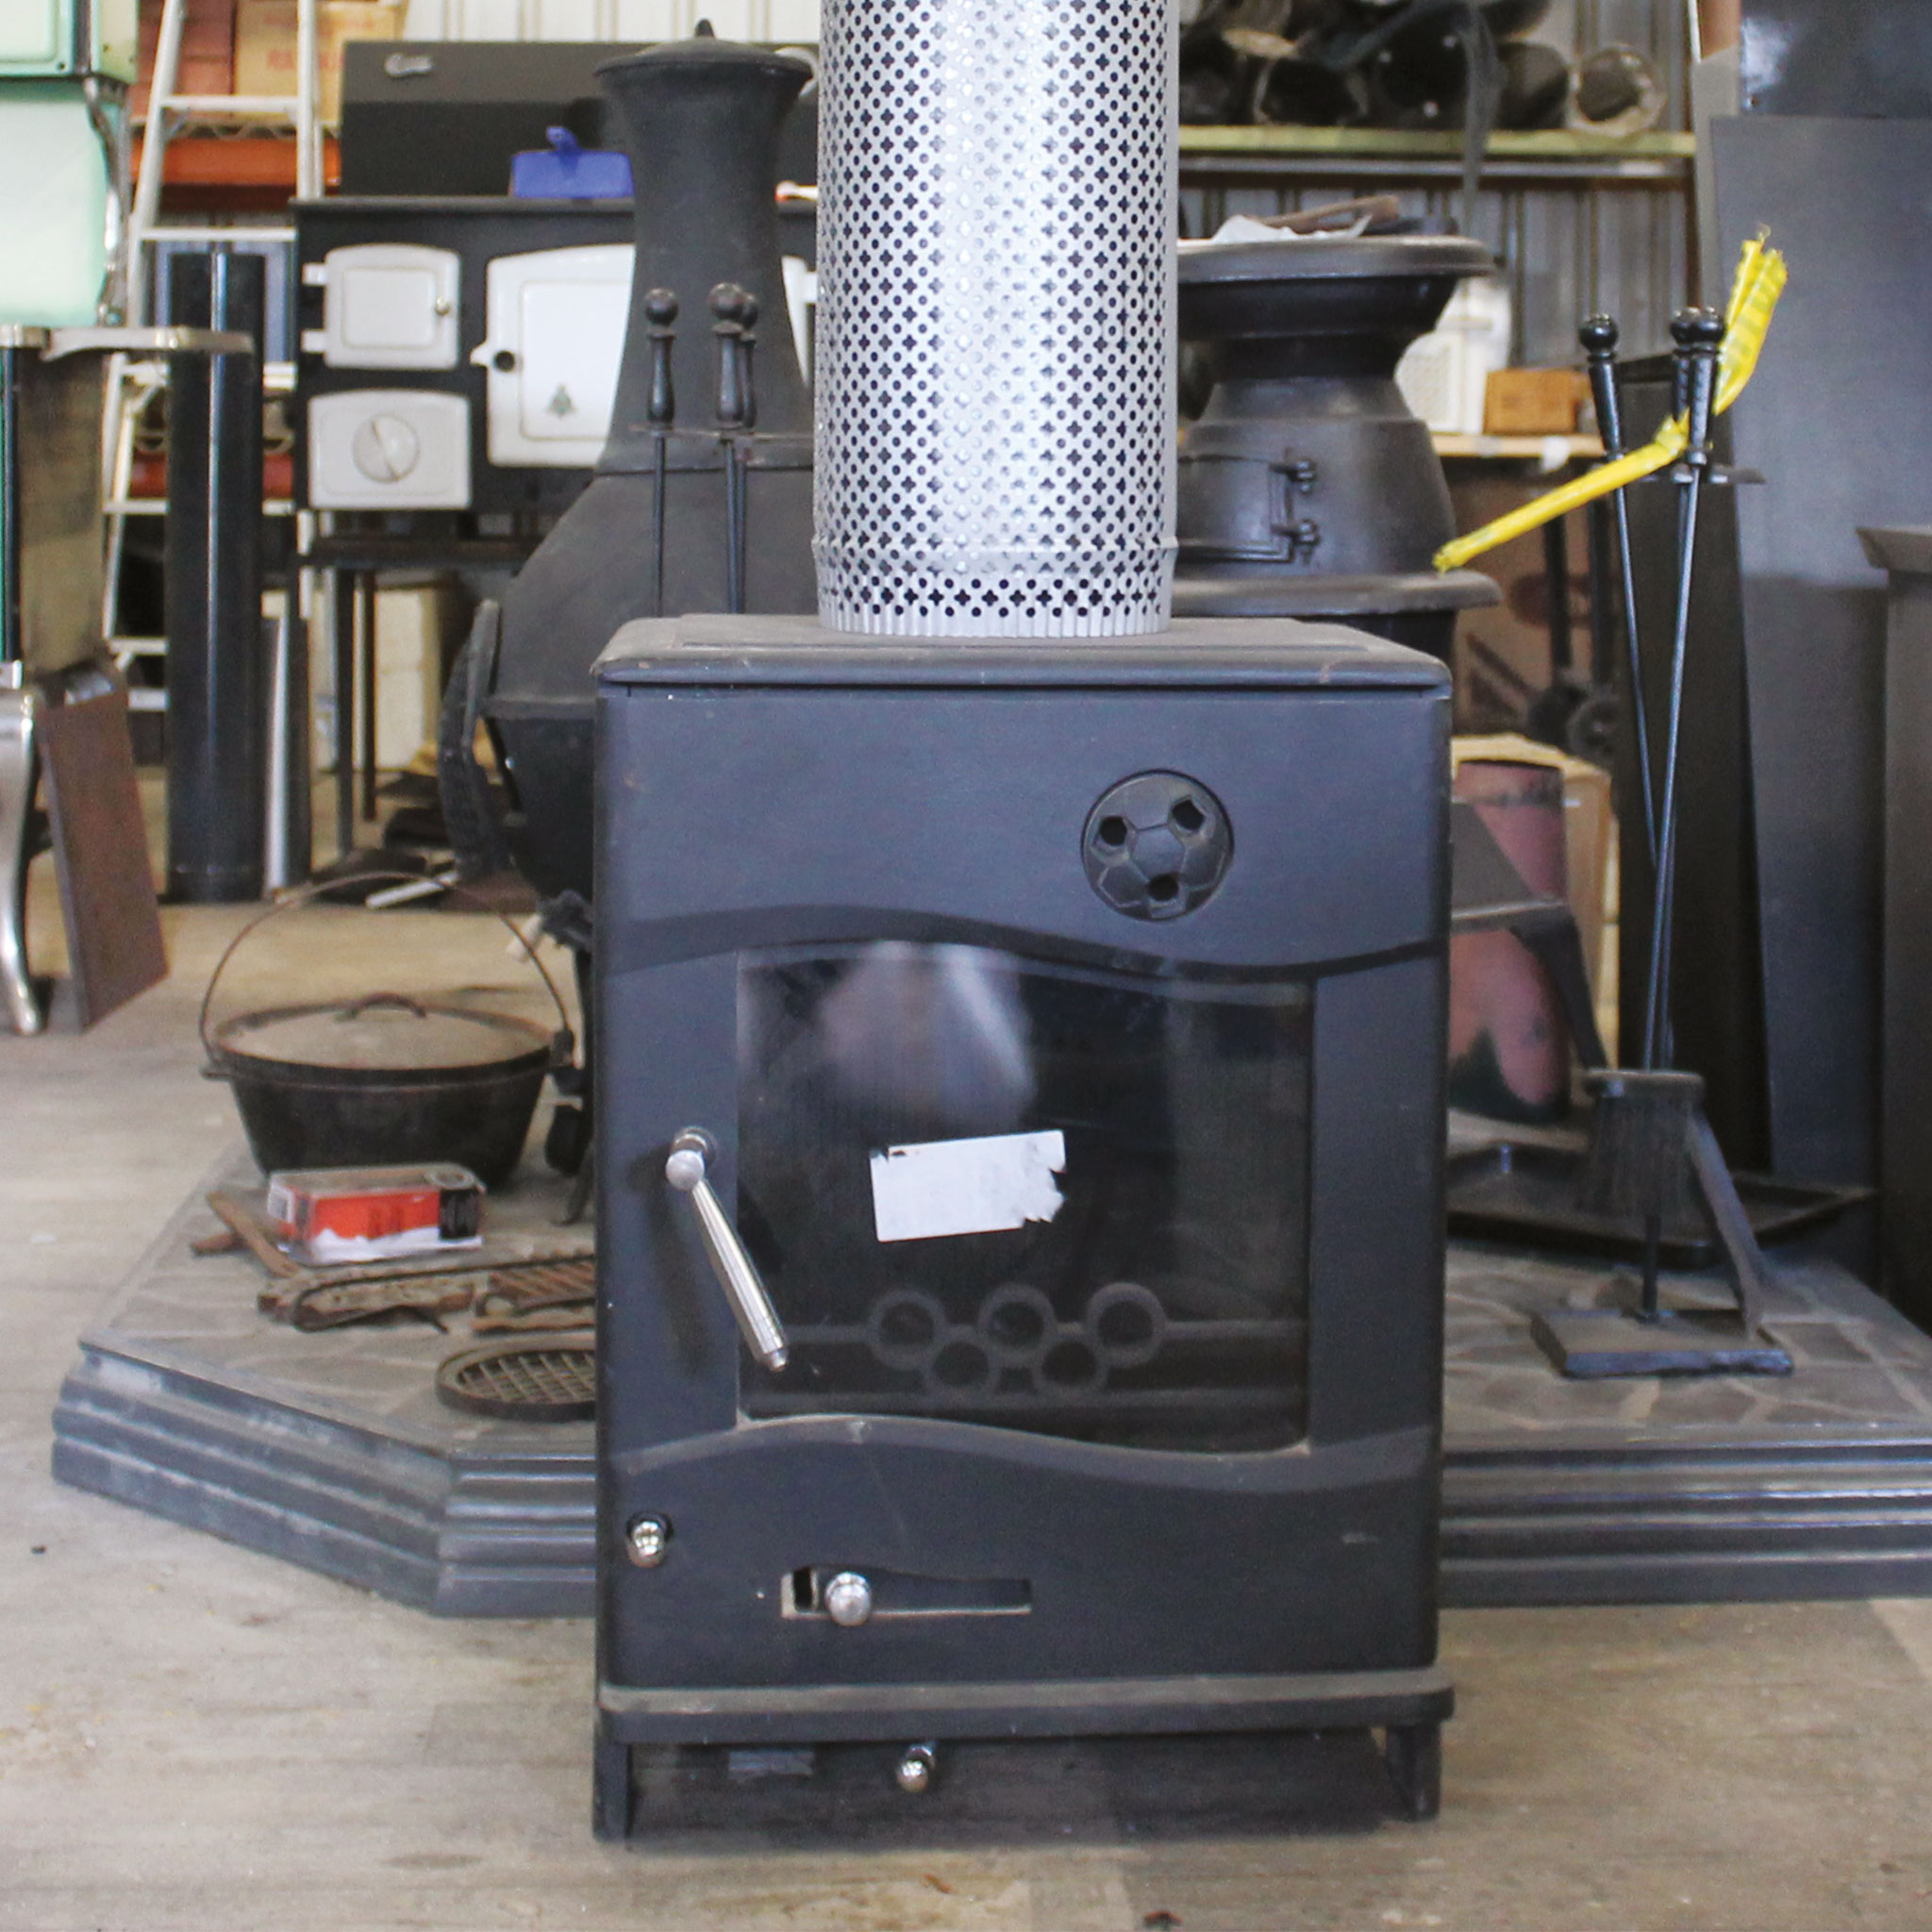 Wood Stoves For Sale >> Wood Heaters For Sale | Wood Fires and Wood Stoves